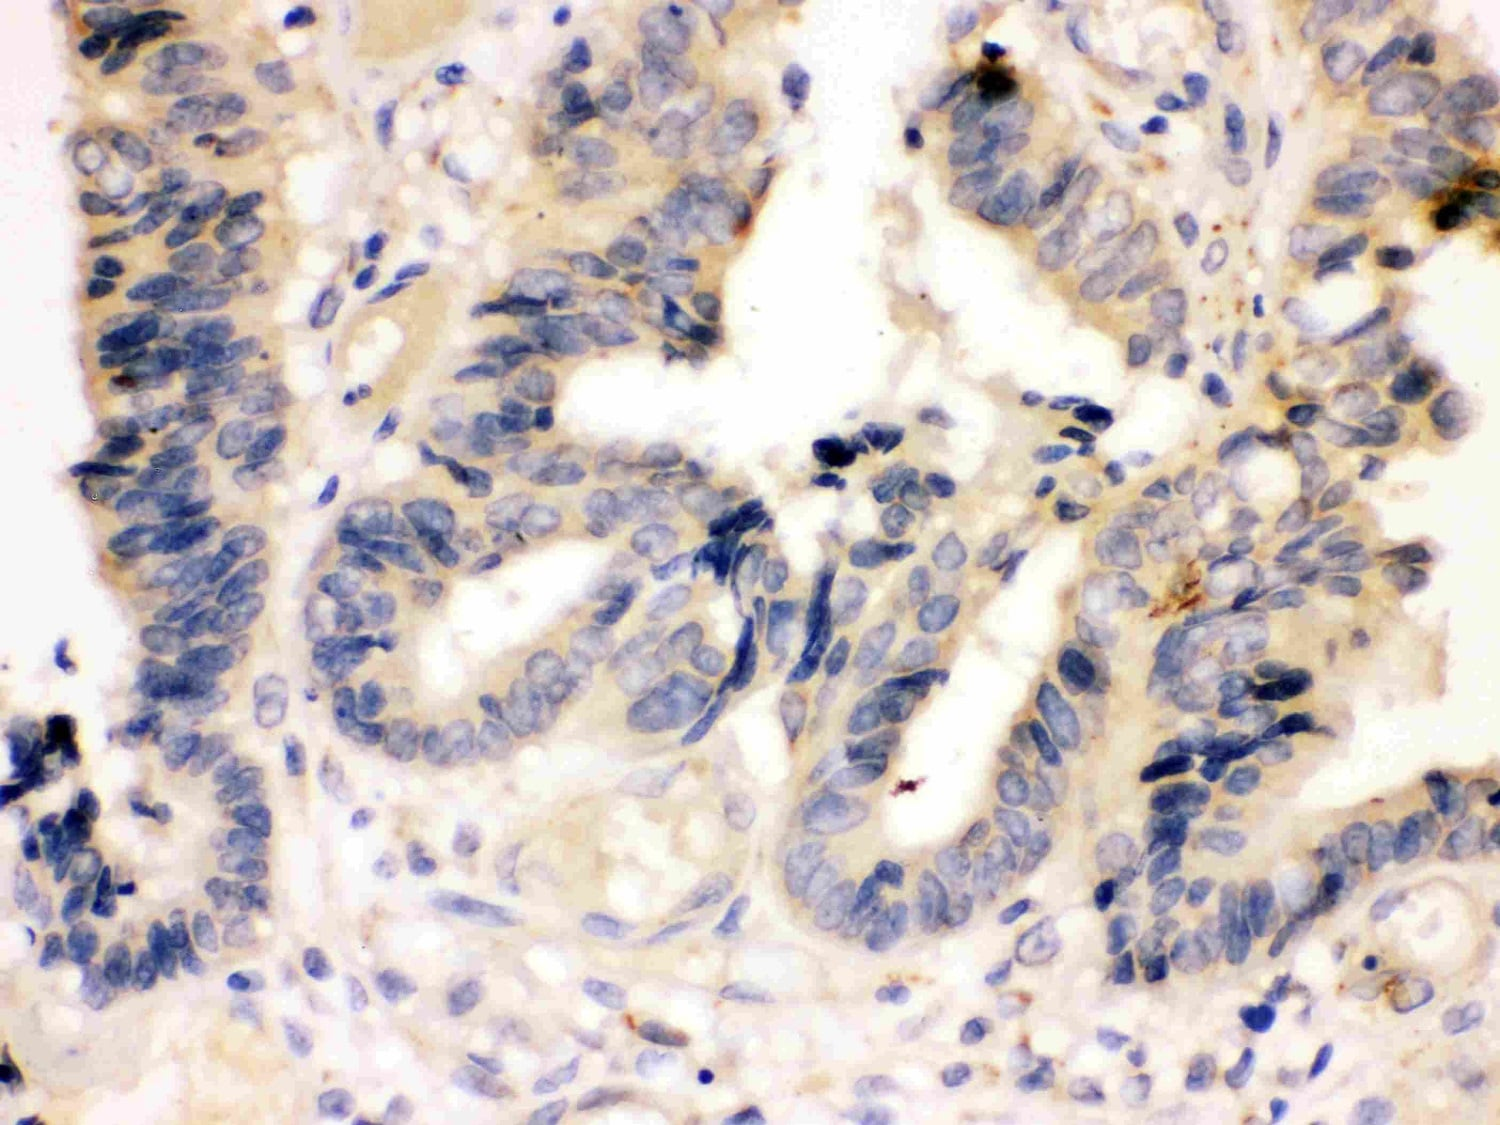 Immunohistochemistry (Formalin/PFA-fixed paraffin-embedded sections) - Anti-Caspase-7 antibody (ab115815)